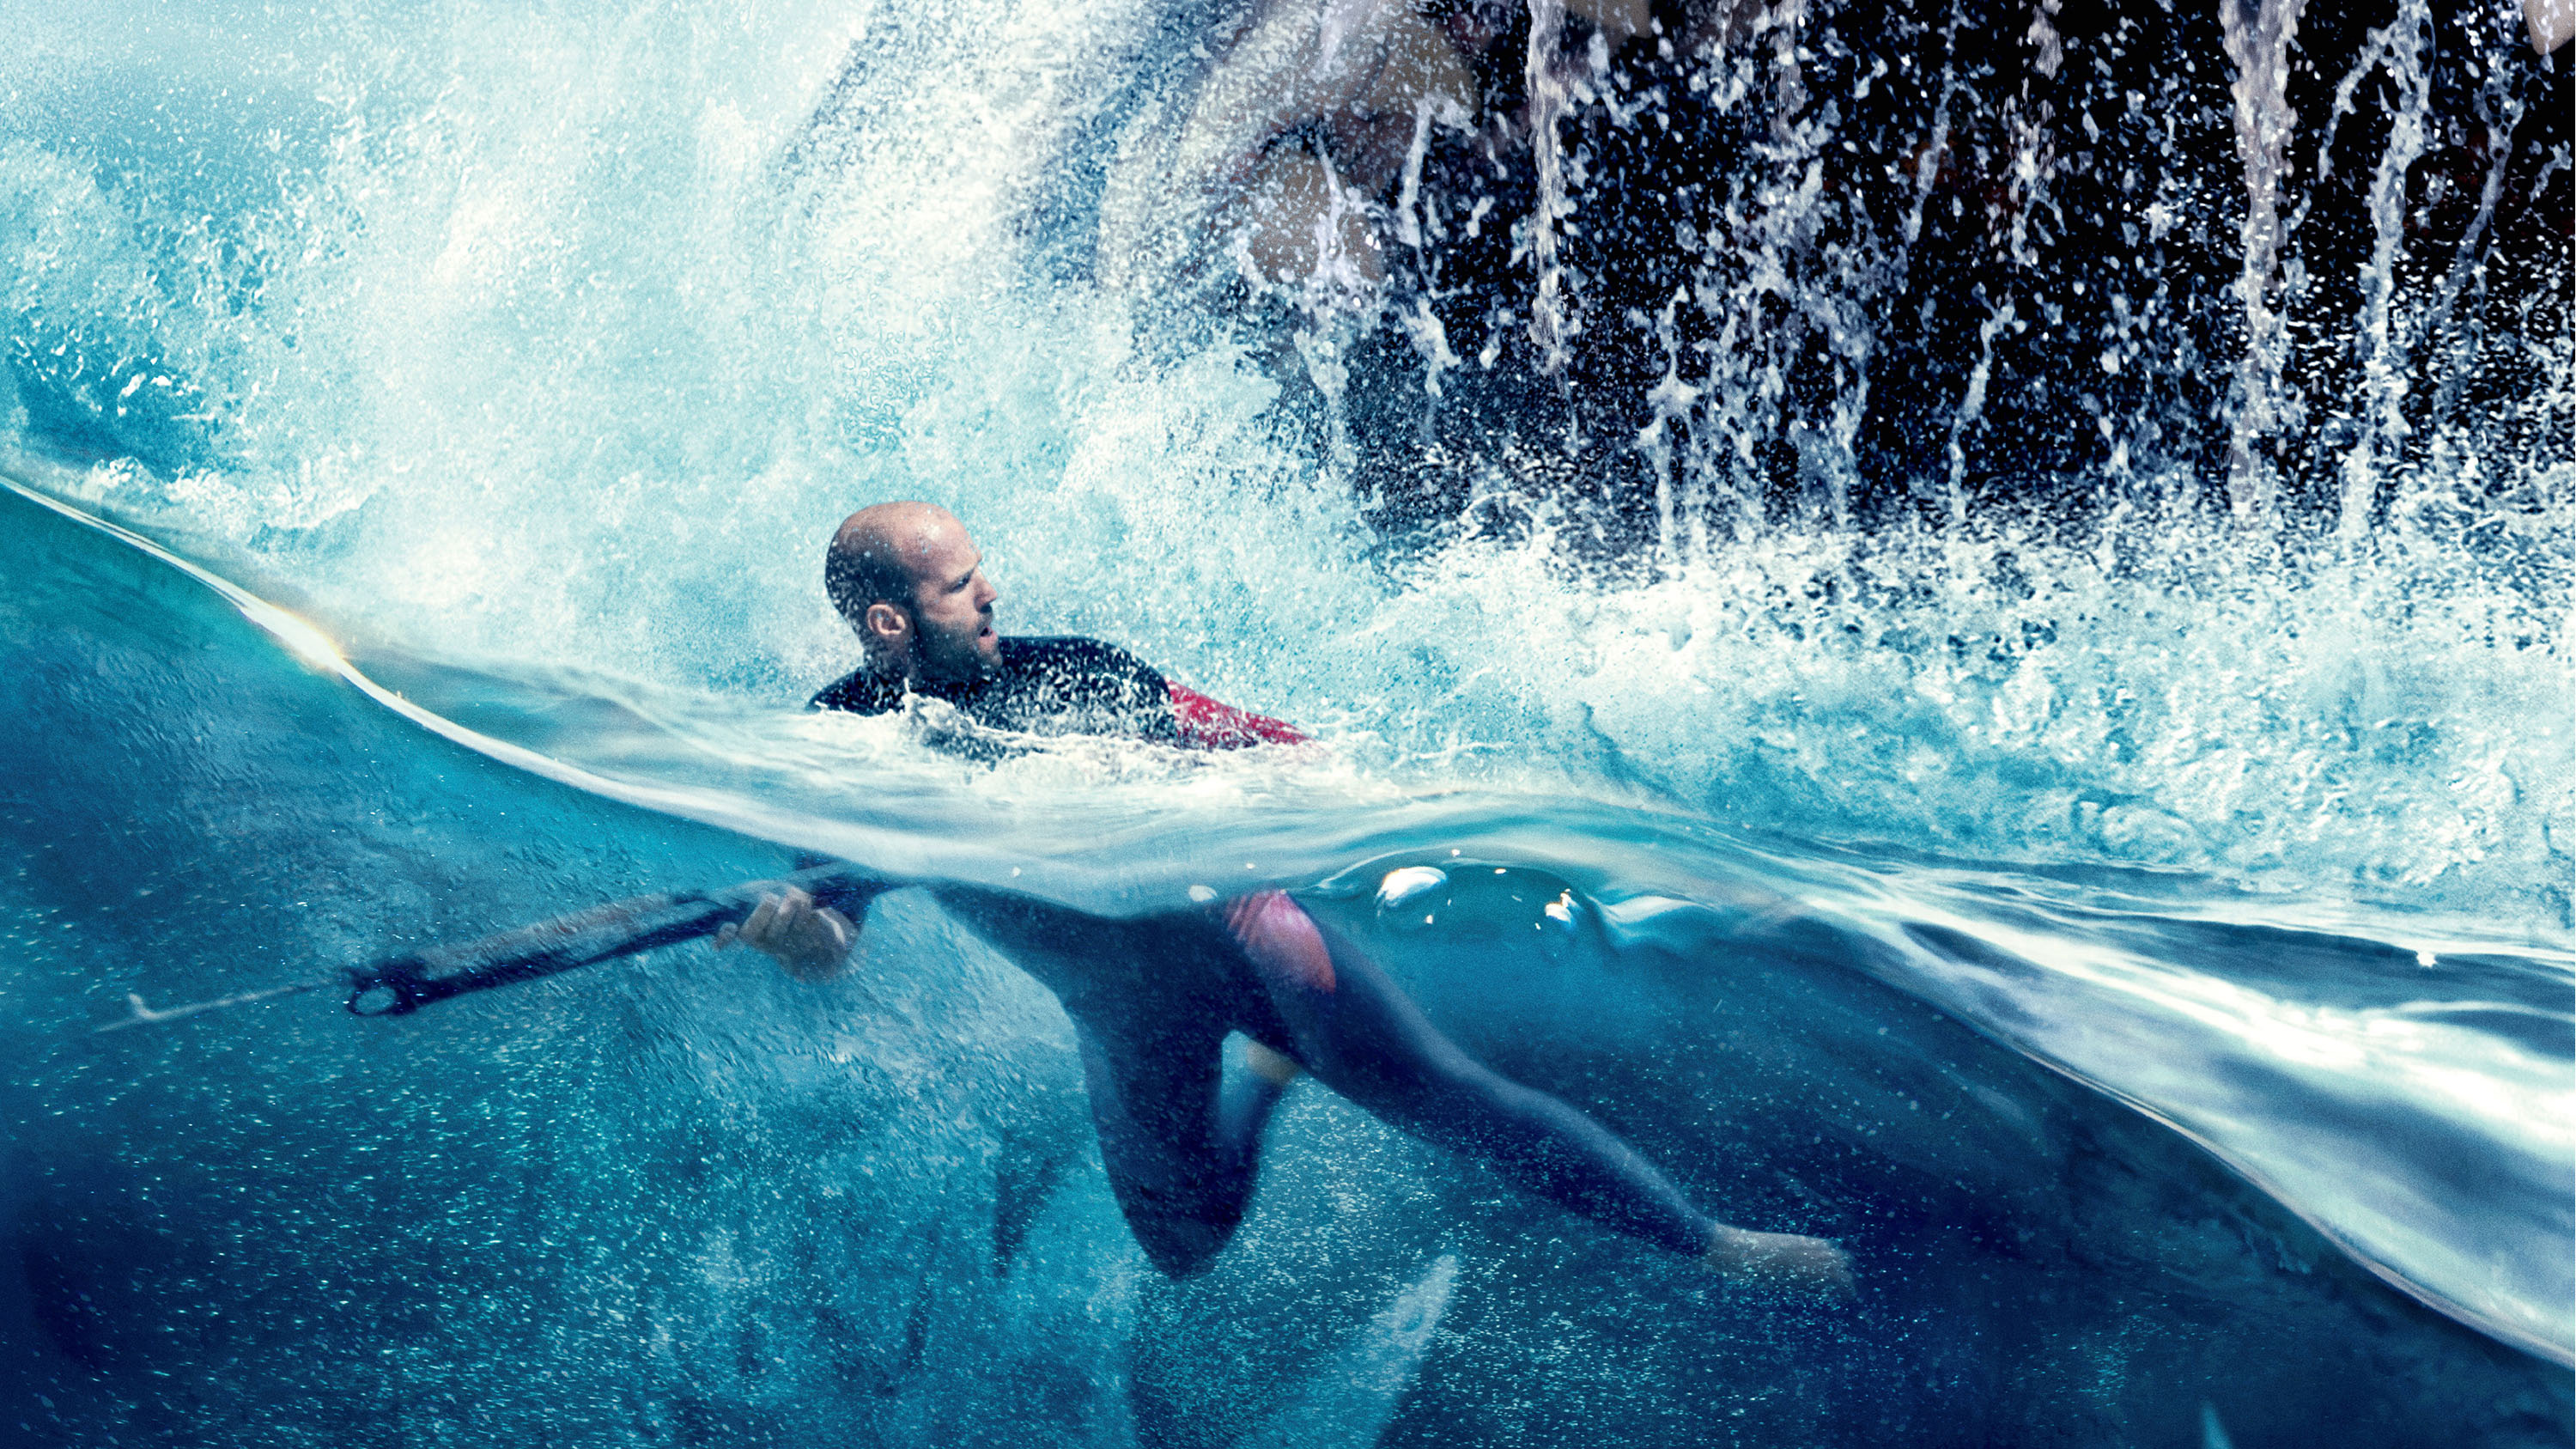 The Meg Movie Poster, HD Movies, 4k Wallpapers, Images ...